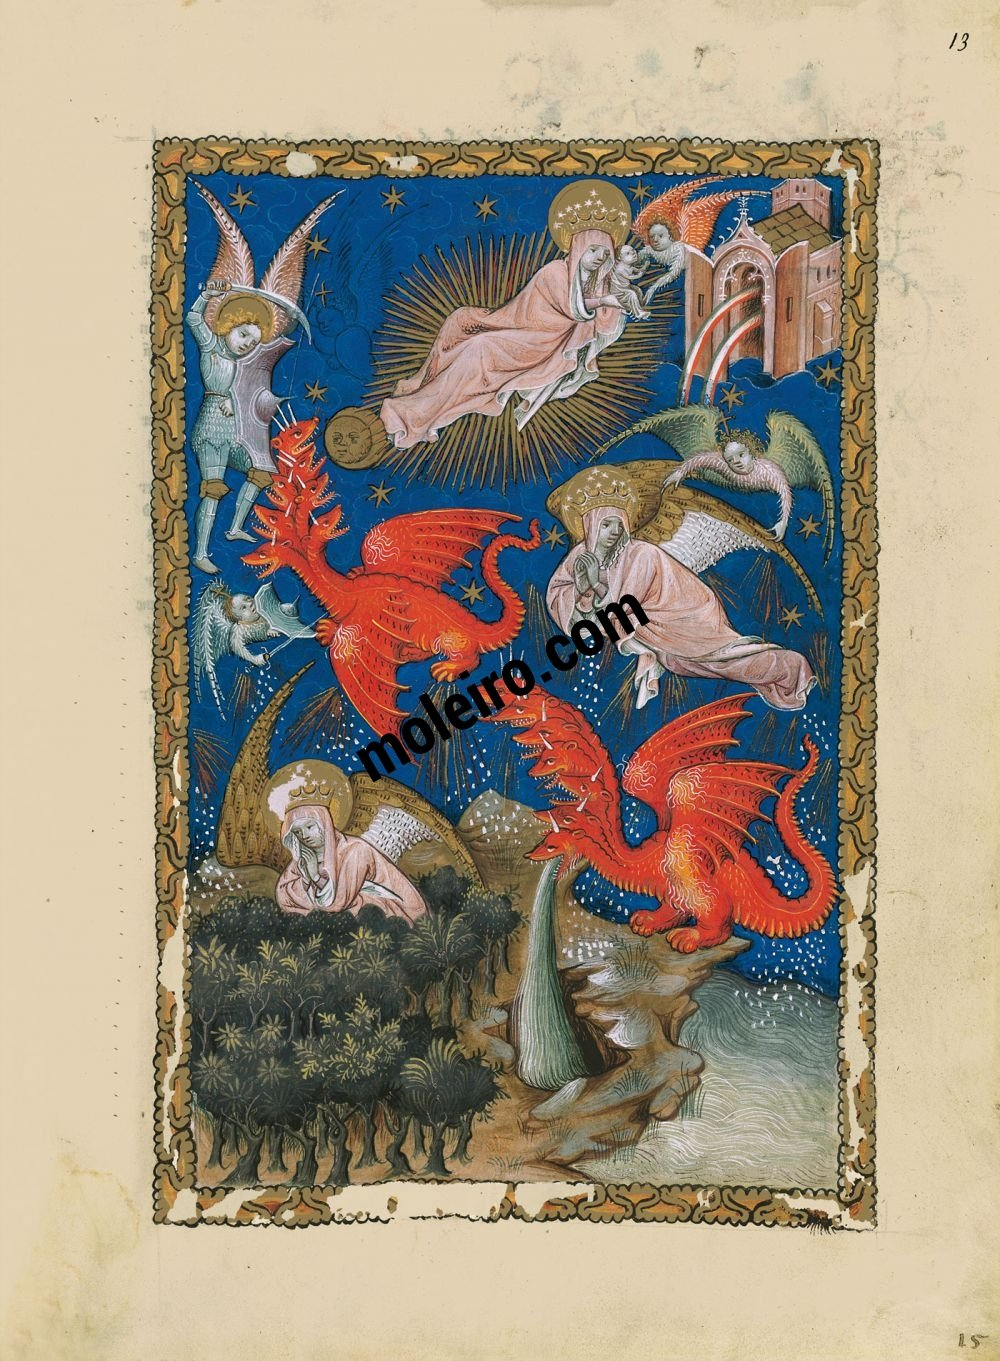 Flemish Apocalypse f. 13r, The temple in heaven and the Woman in the sun and the seven-headed dragon